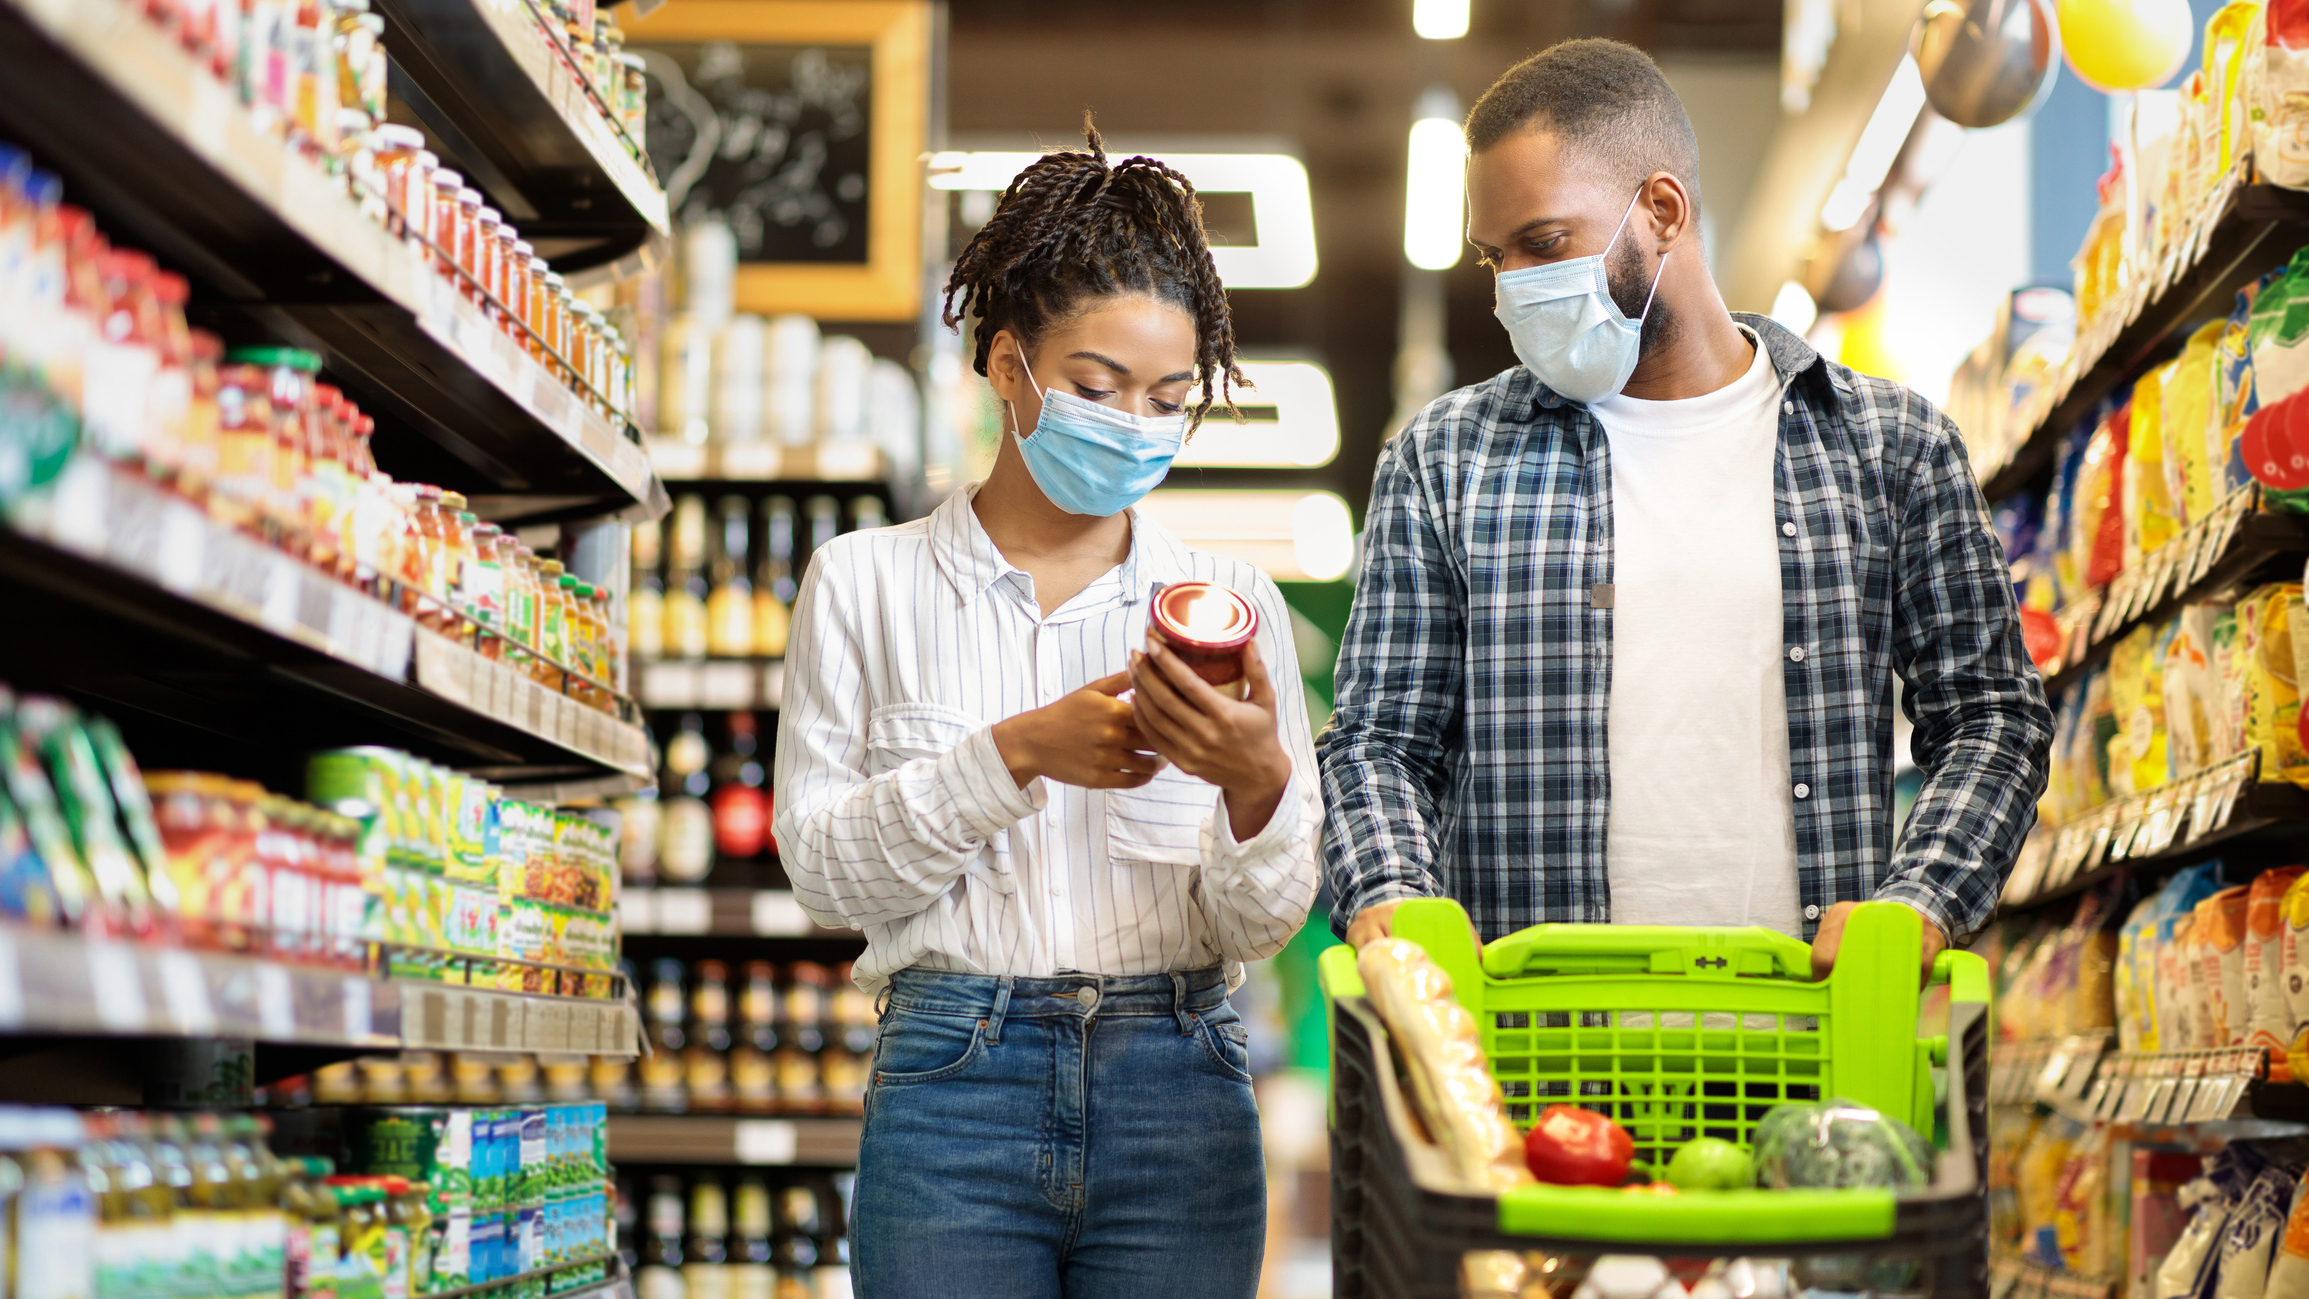 Couple In Shop Buying Groceries Wearing Face Mask